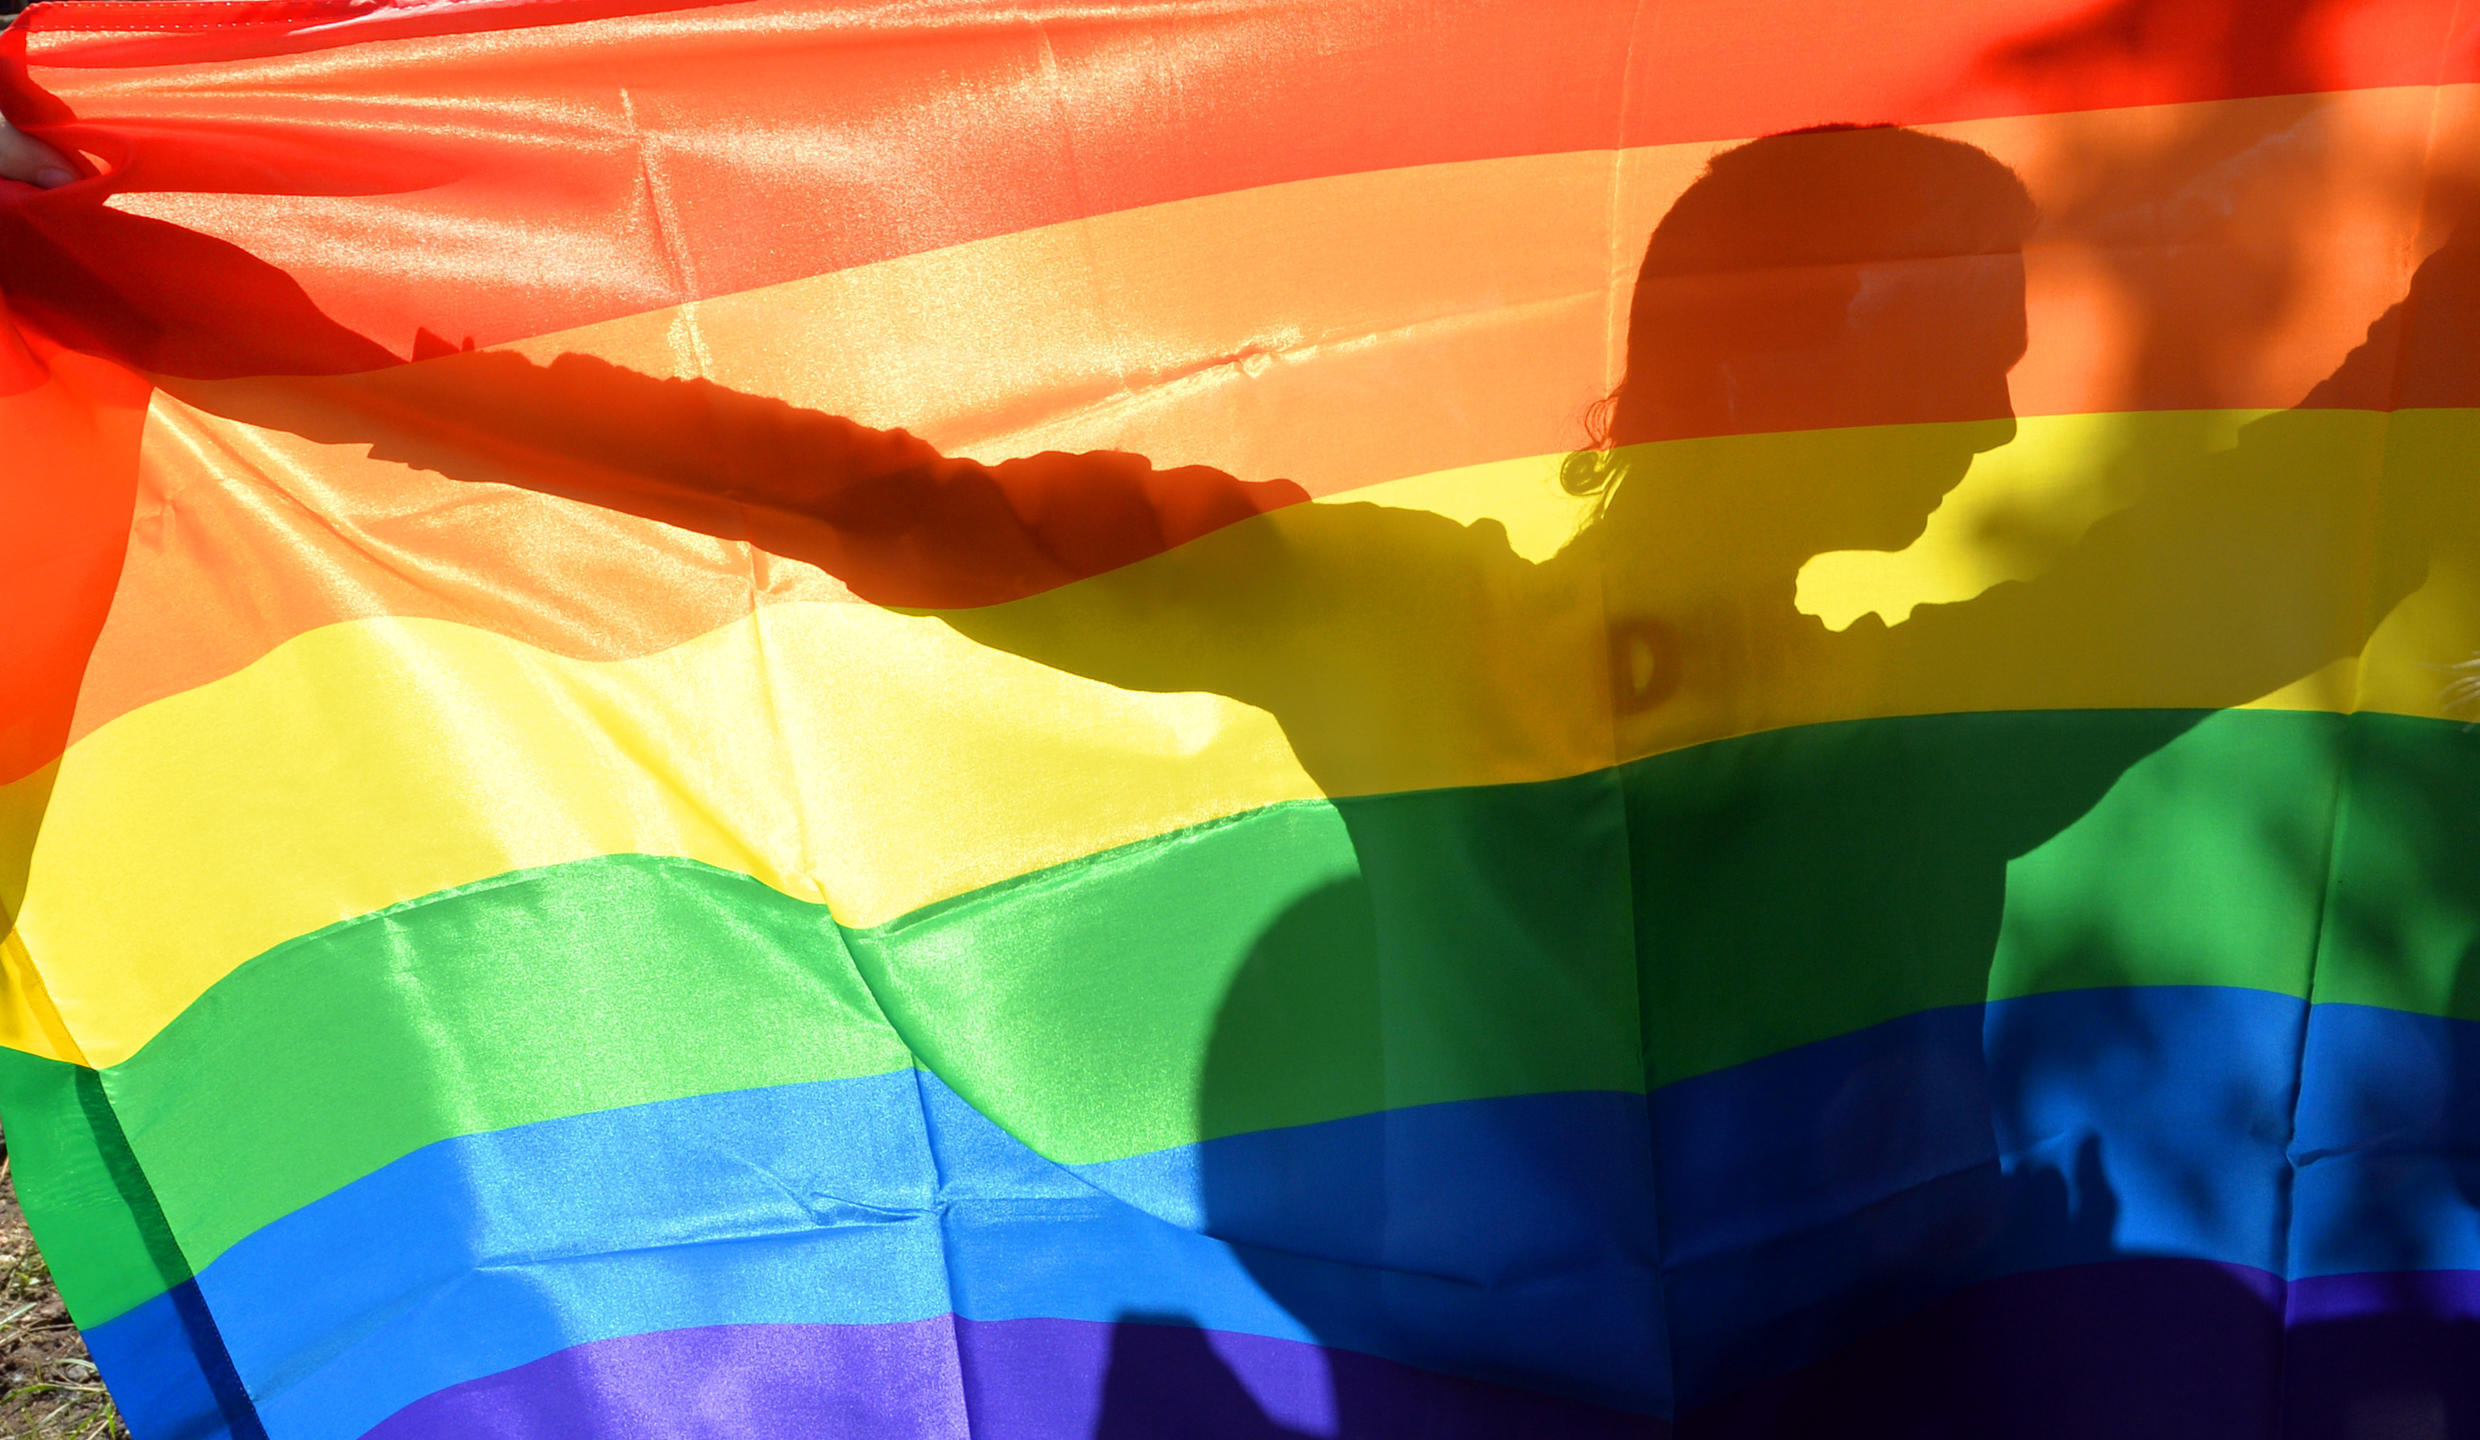 Despite significant progress on gay rights around the world, dozens of countries still criminalise consensual same-sex activity